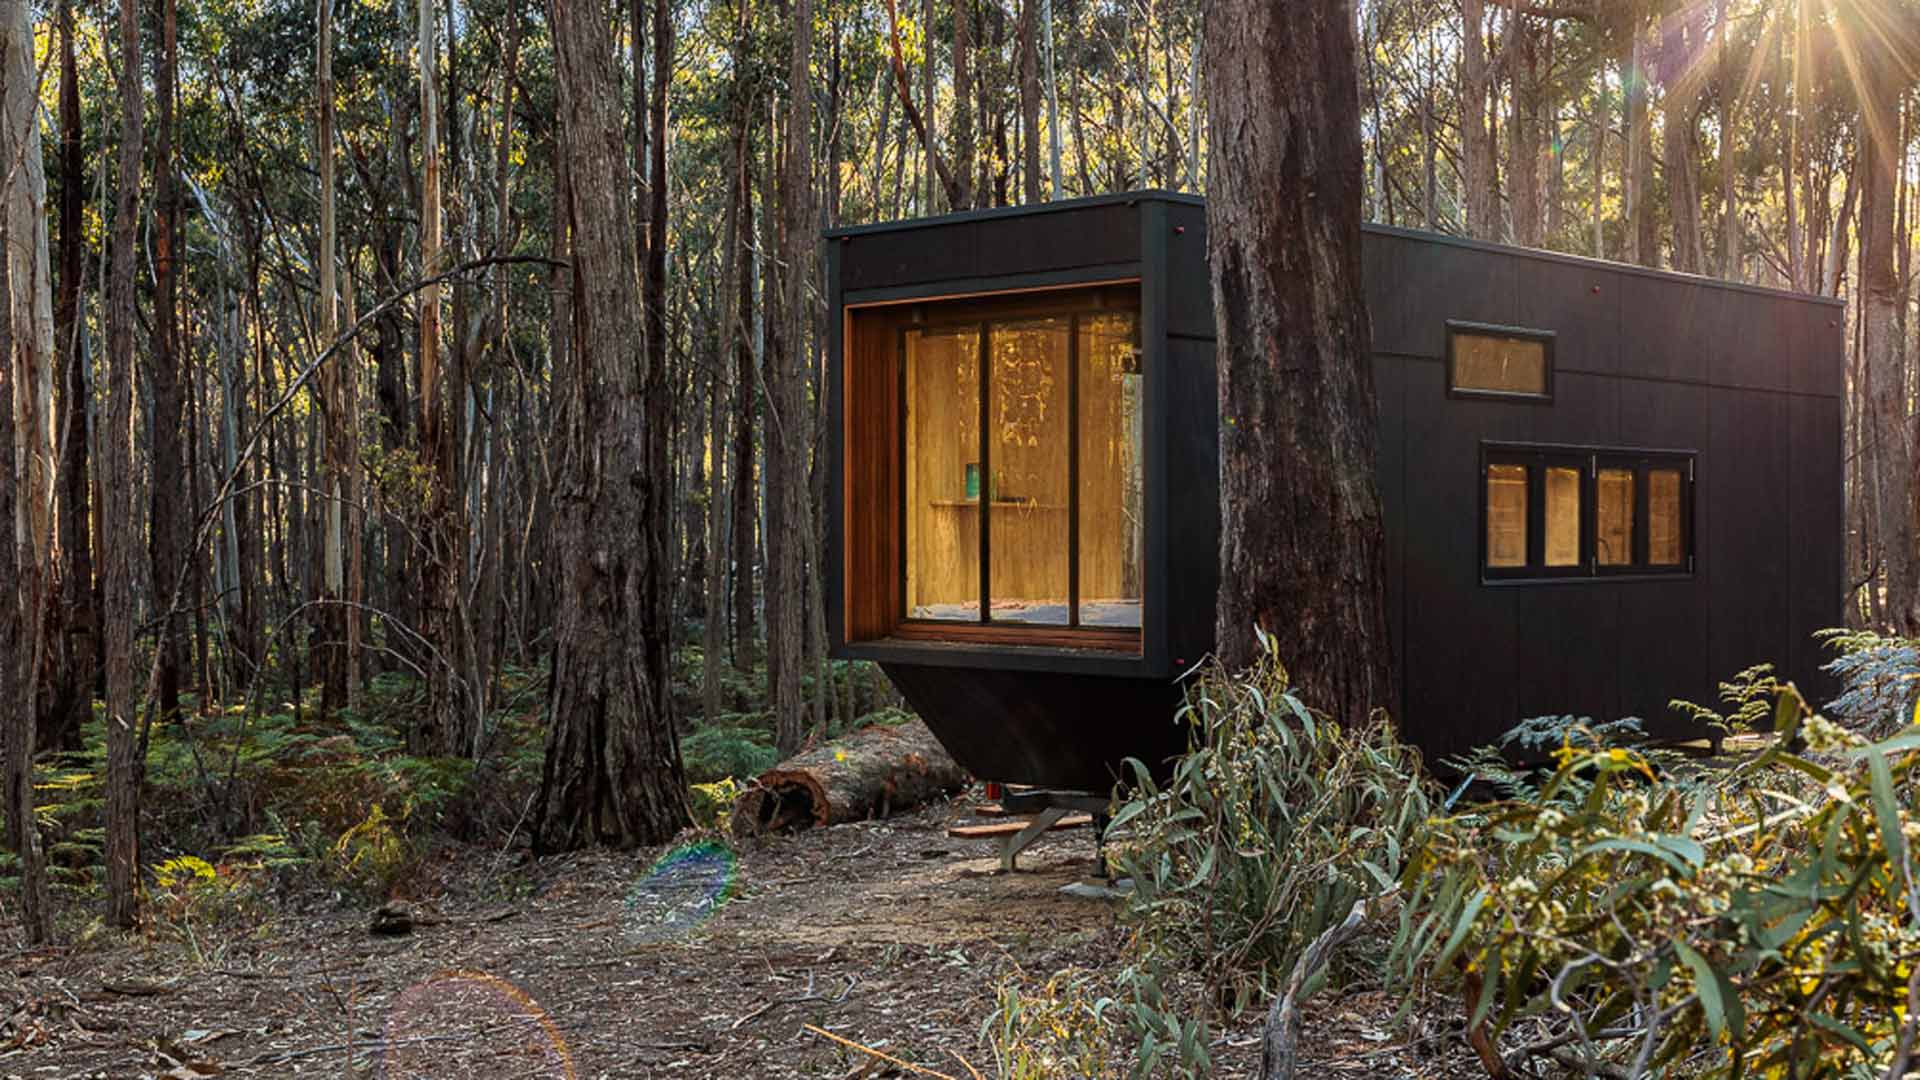 Cabn Is Bringing Its Tiny Solar-Powered Houses to the Sunshine Coast's Multi-Day Hiking Trail